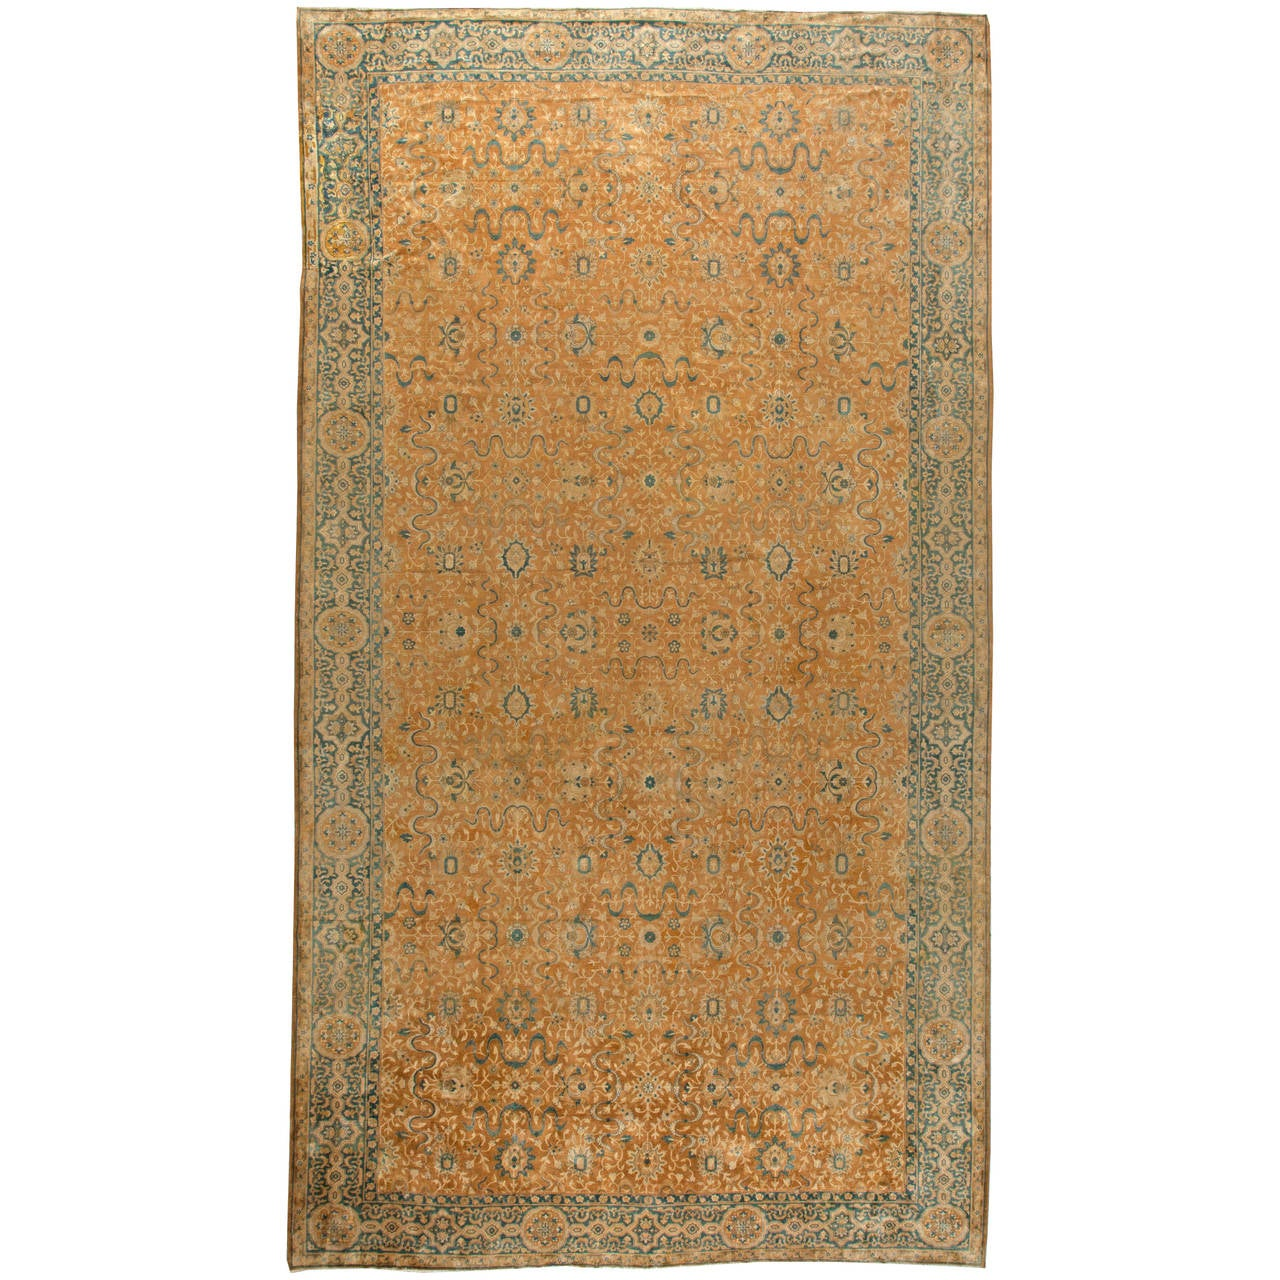 Rugs Made In India For Sale